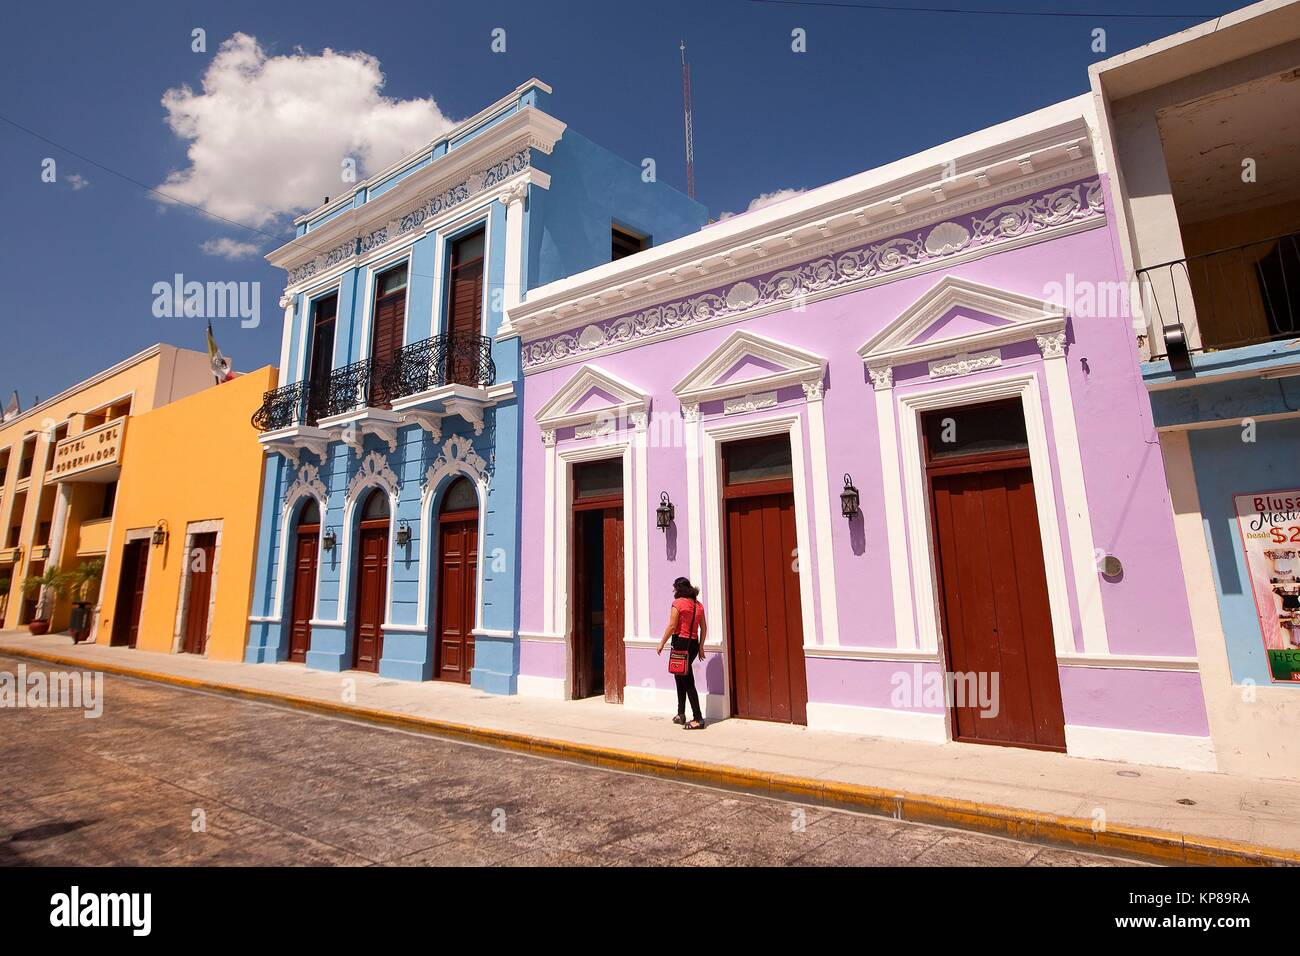 Woman walking in front of the colorful colonial buildings in